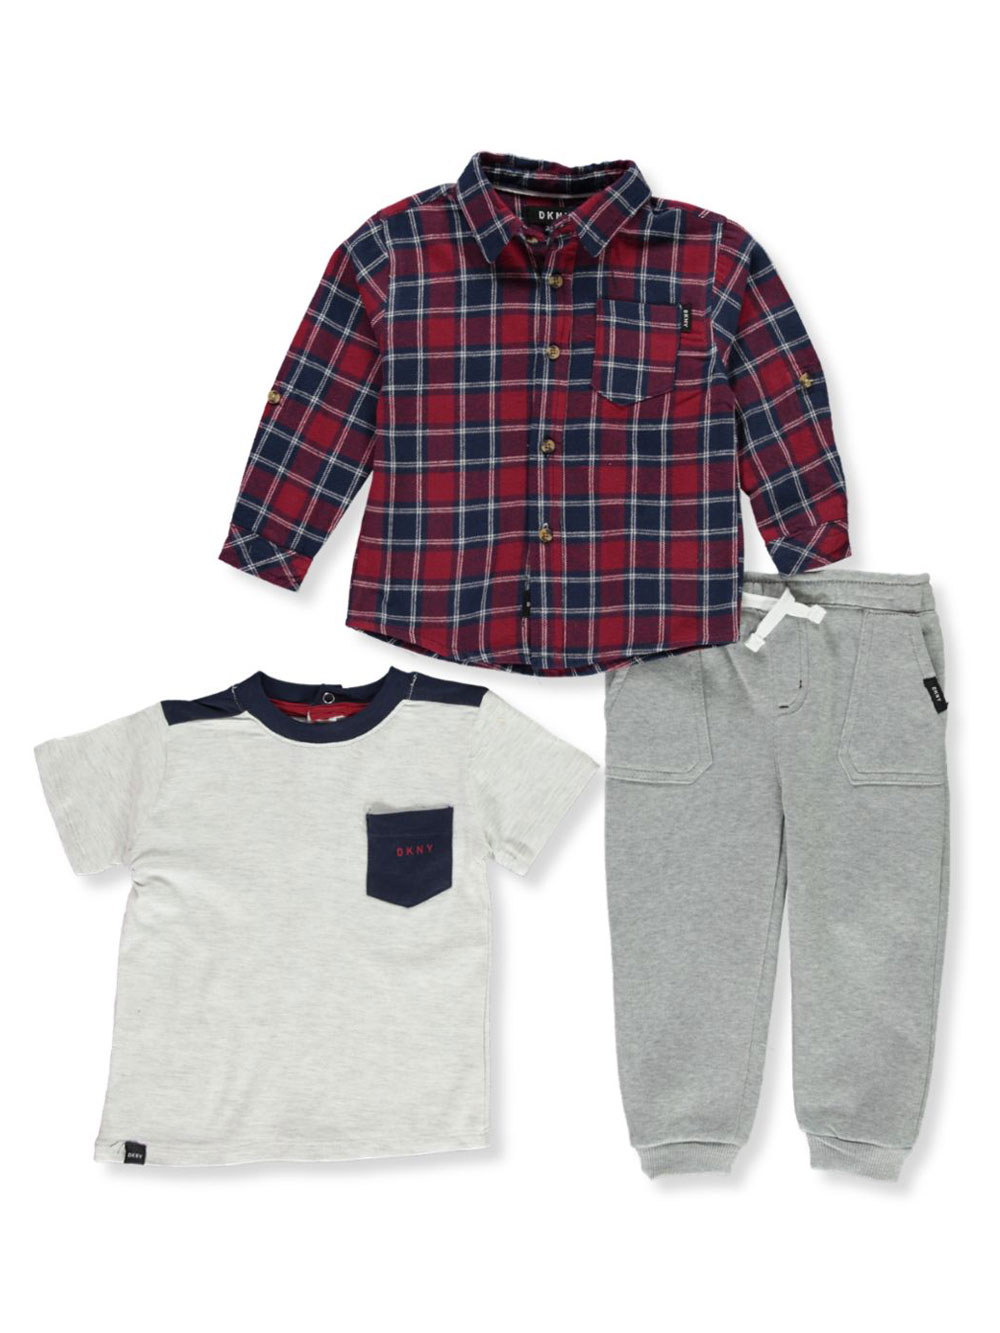 Boys Heather Gray Pant Sets